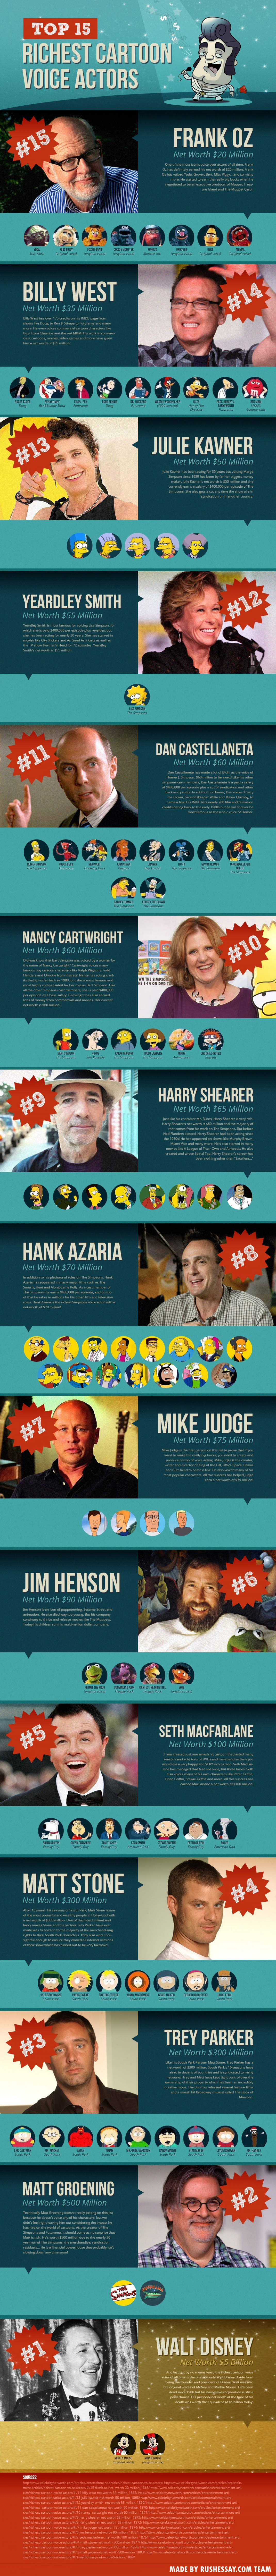 Top 15 Richest Cartoon Voice Actors Infographic